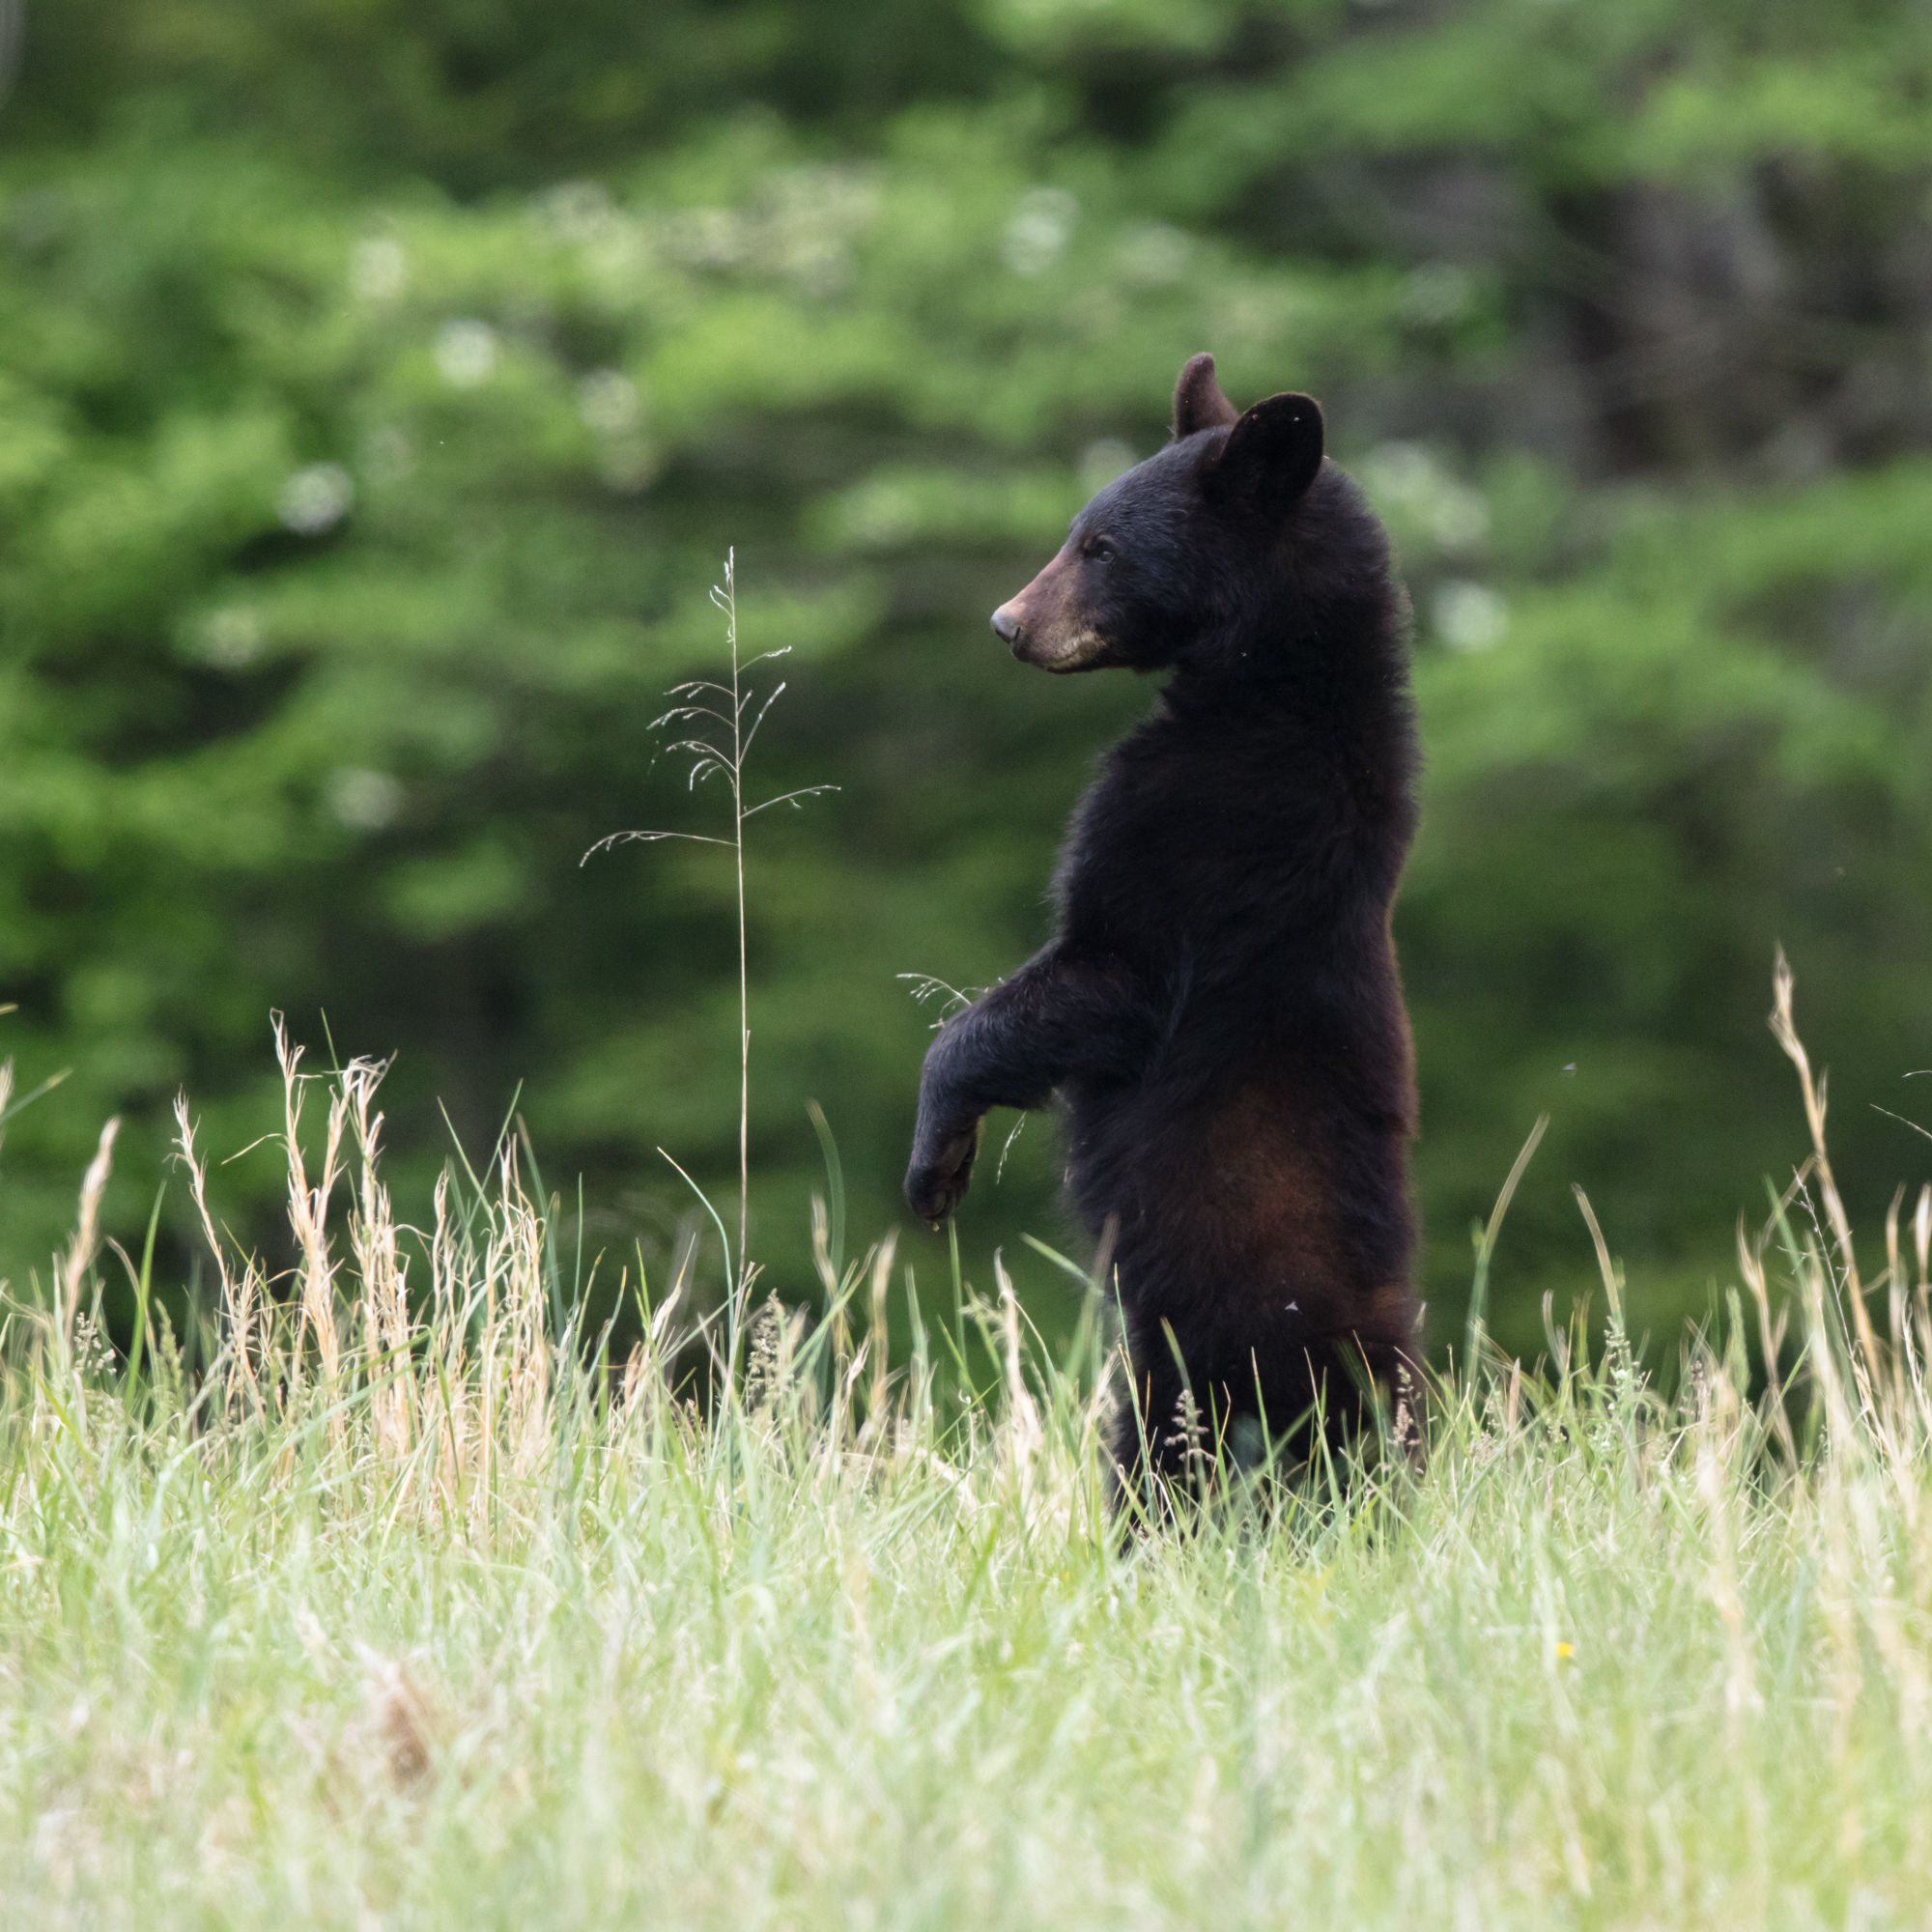 Young black bear in the fields in Cades Cove. I would often use fence posts to help steady my shots as I waited for action from these bear. Taken with Canon 5DS using EF500mm f/4L IS II USM +1.4x III. 700mm, f/5.6, 1/640s, ISO 1600.